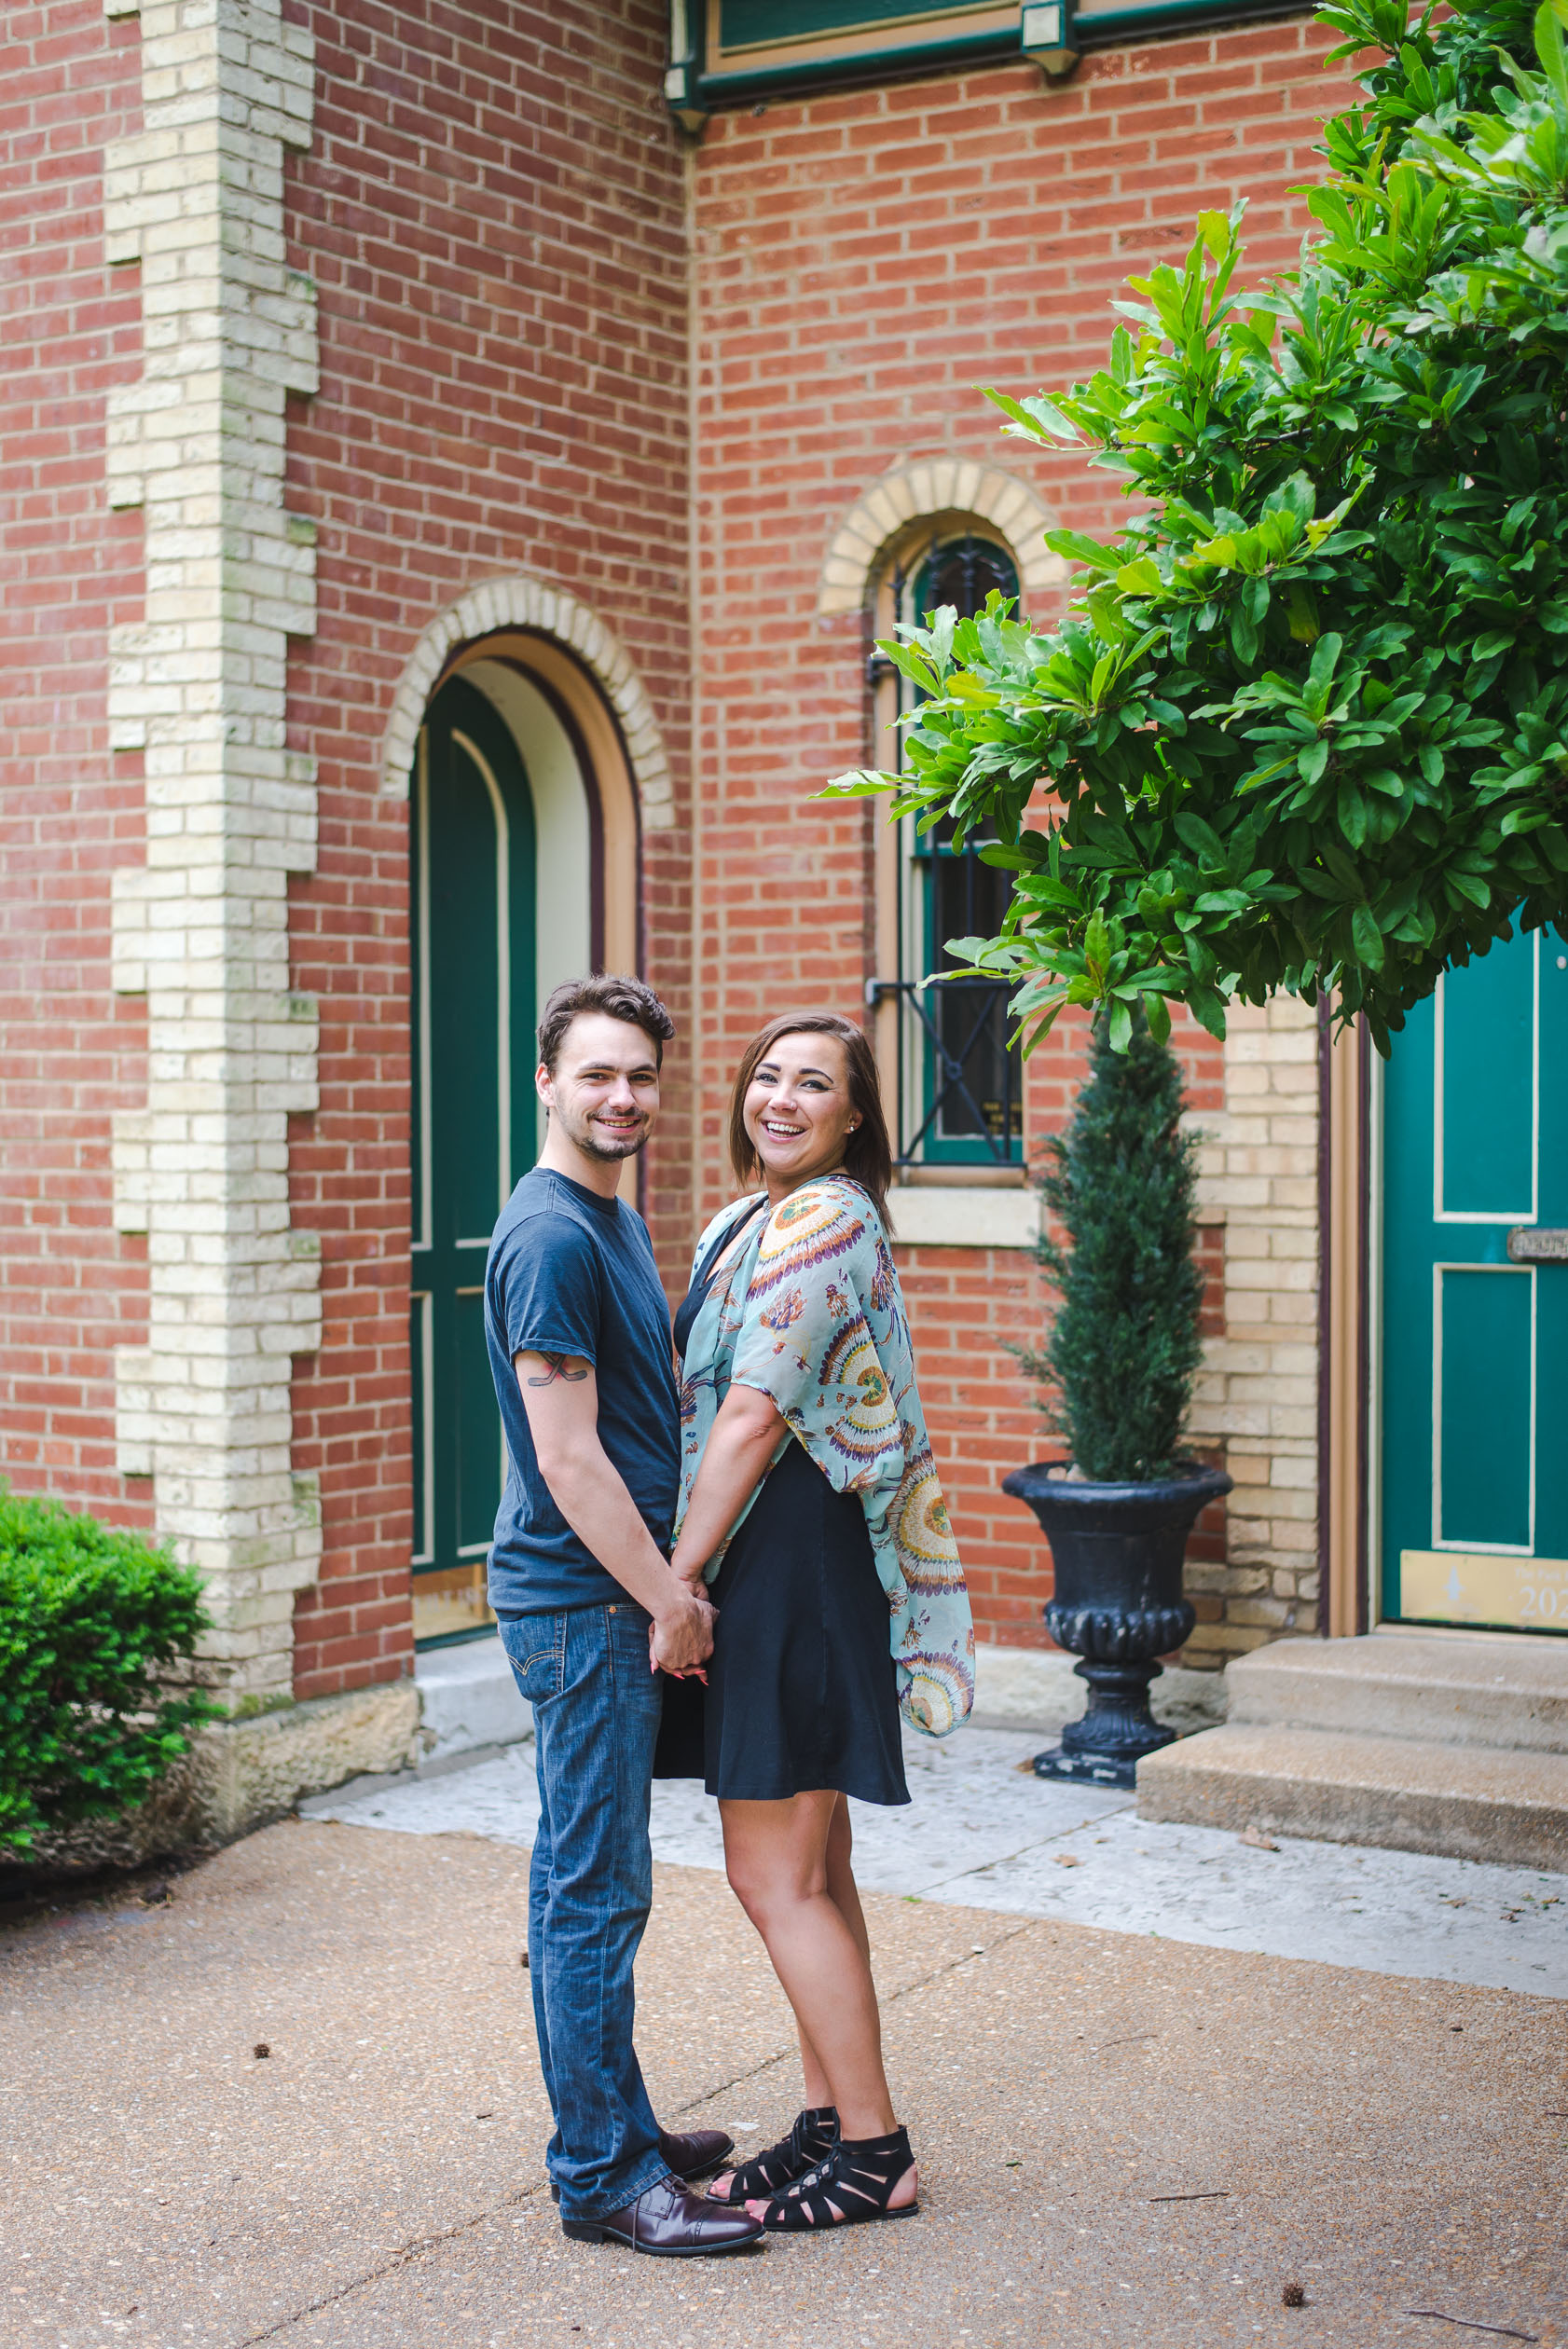 Couples portrait photography session in Lafayette Square Park in St. Louis.